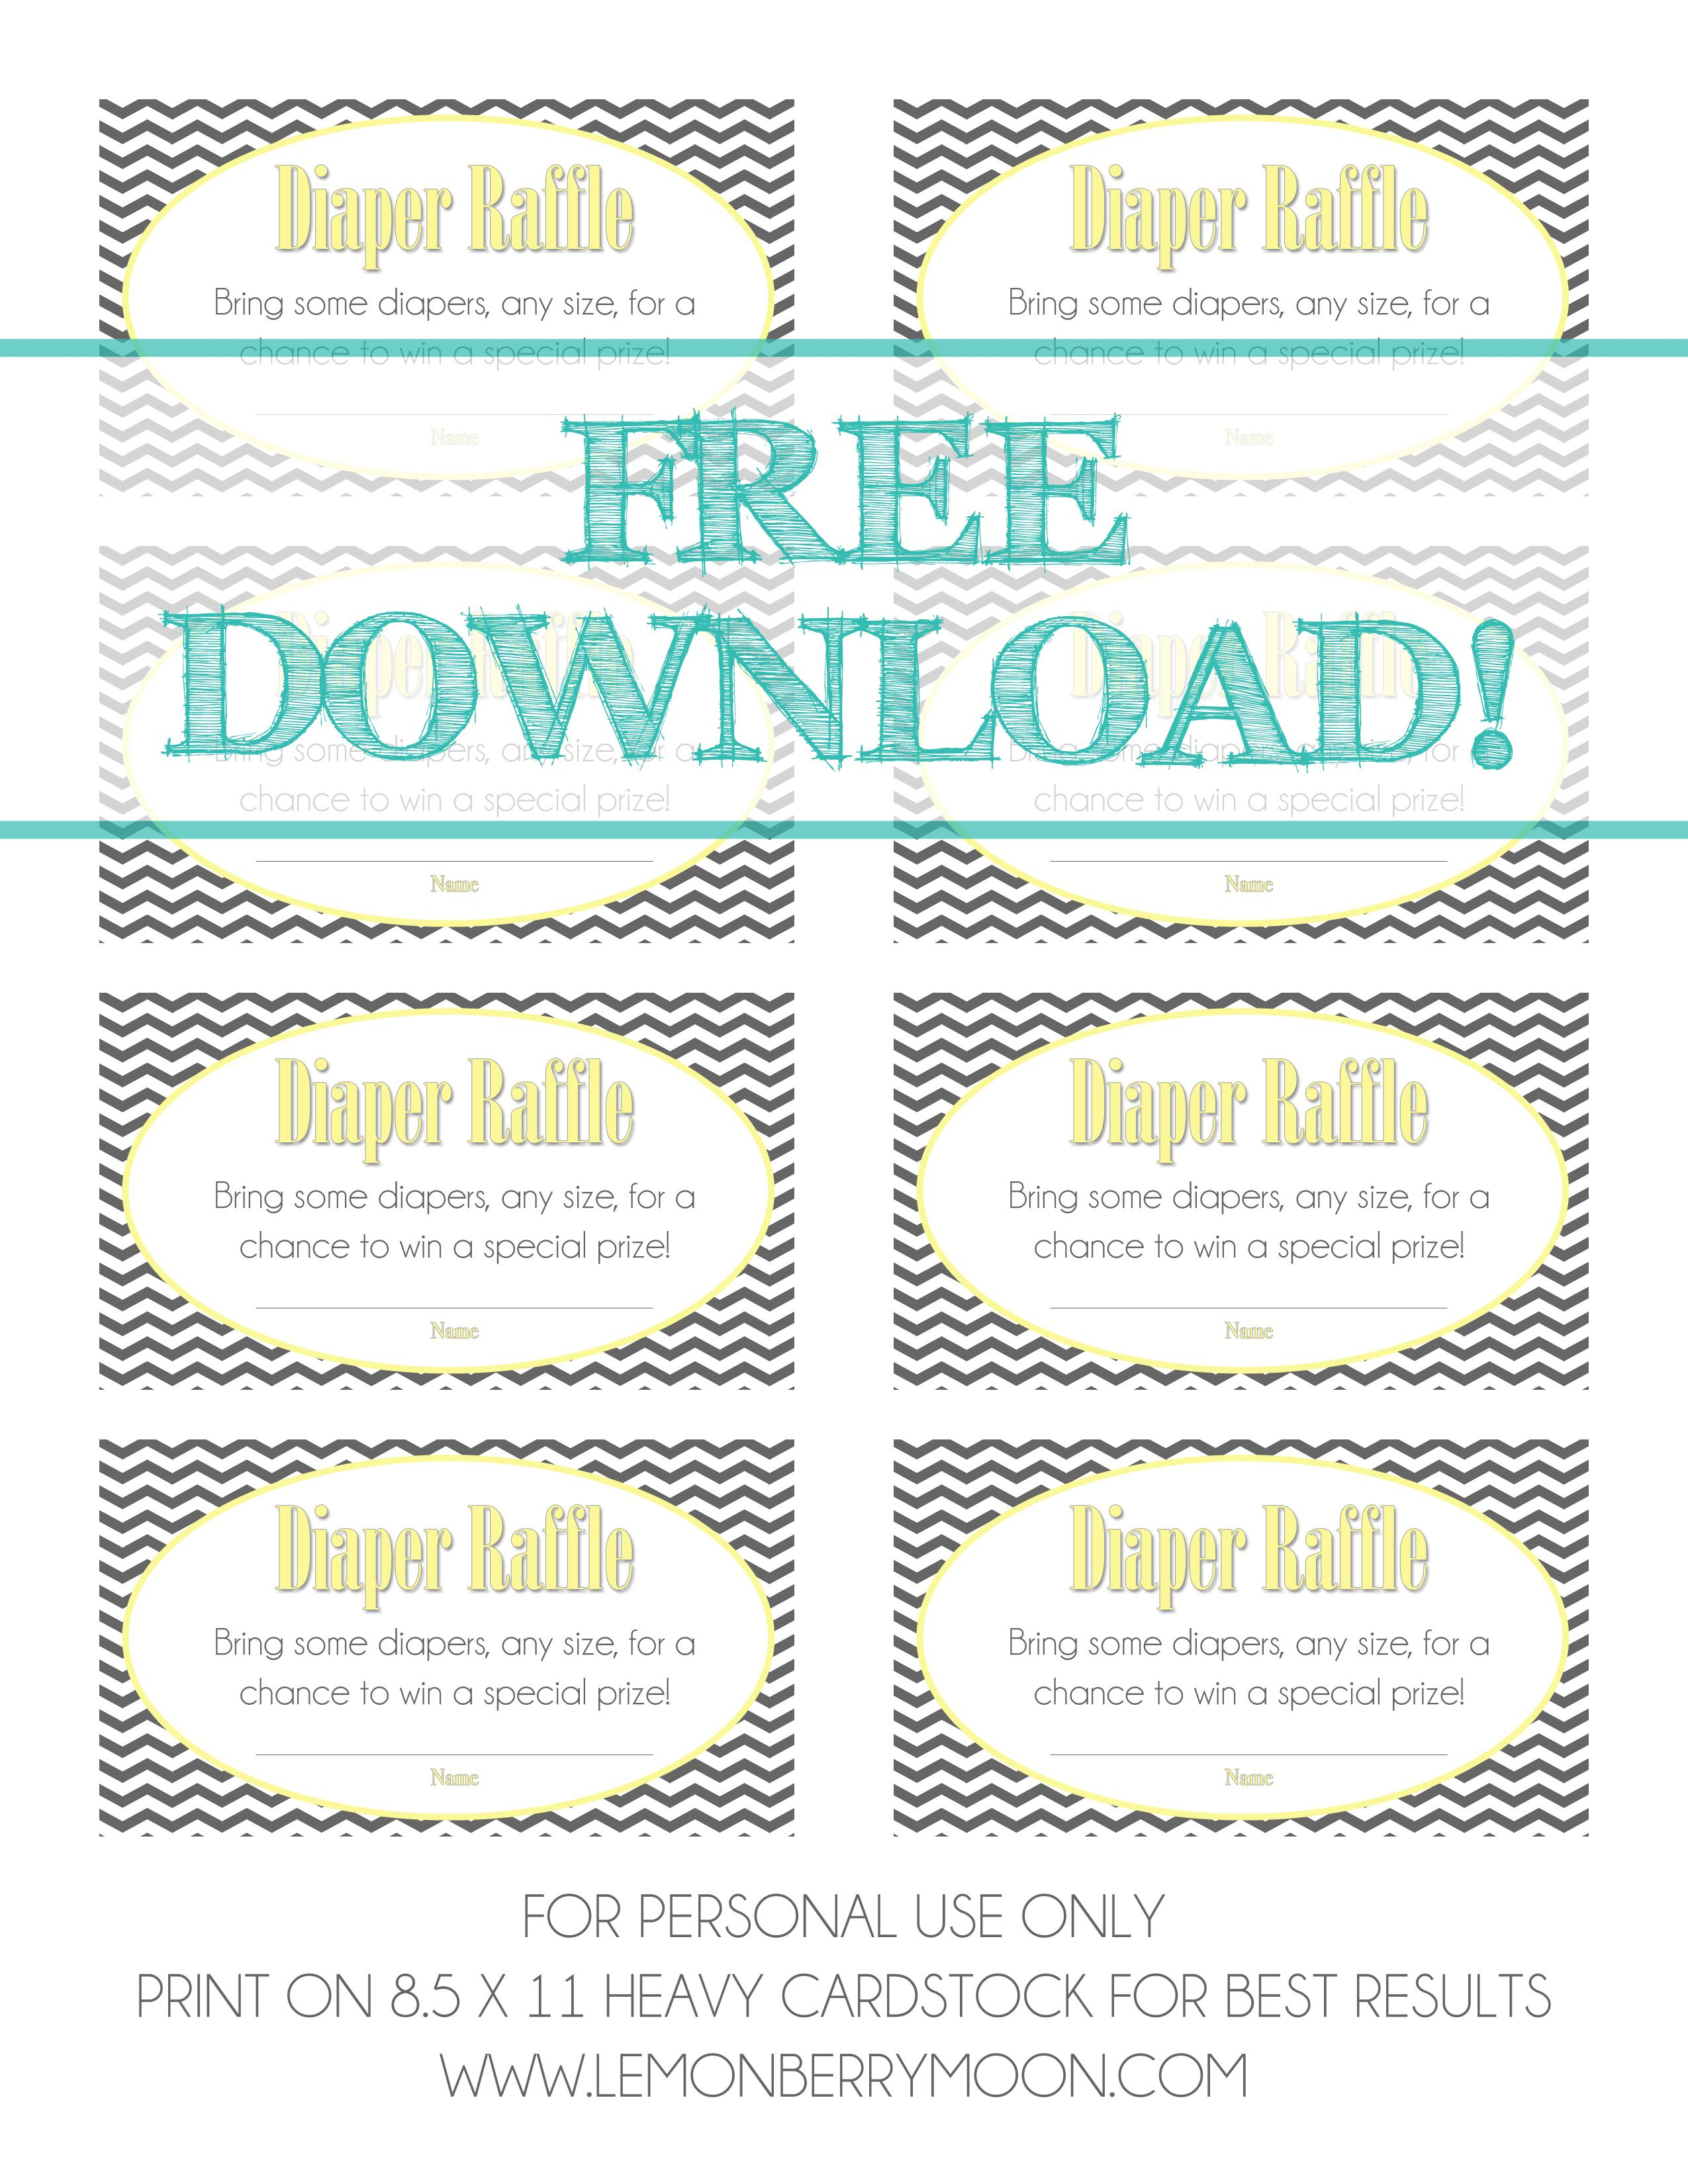 Free Download - Baby Diaper Raffle Template   Baaby Shower   Baby - Free Printable Diaper Raffle Ticket Template